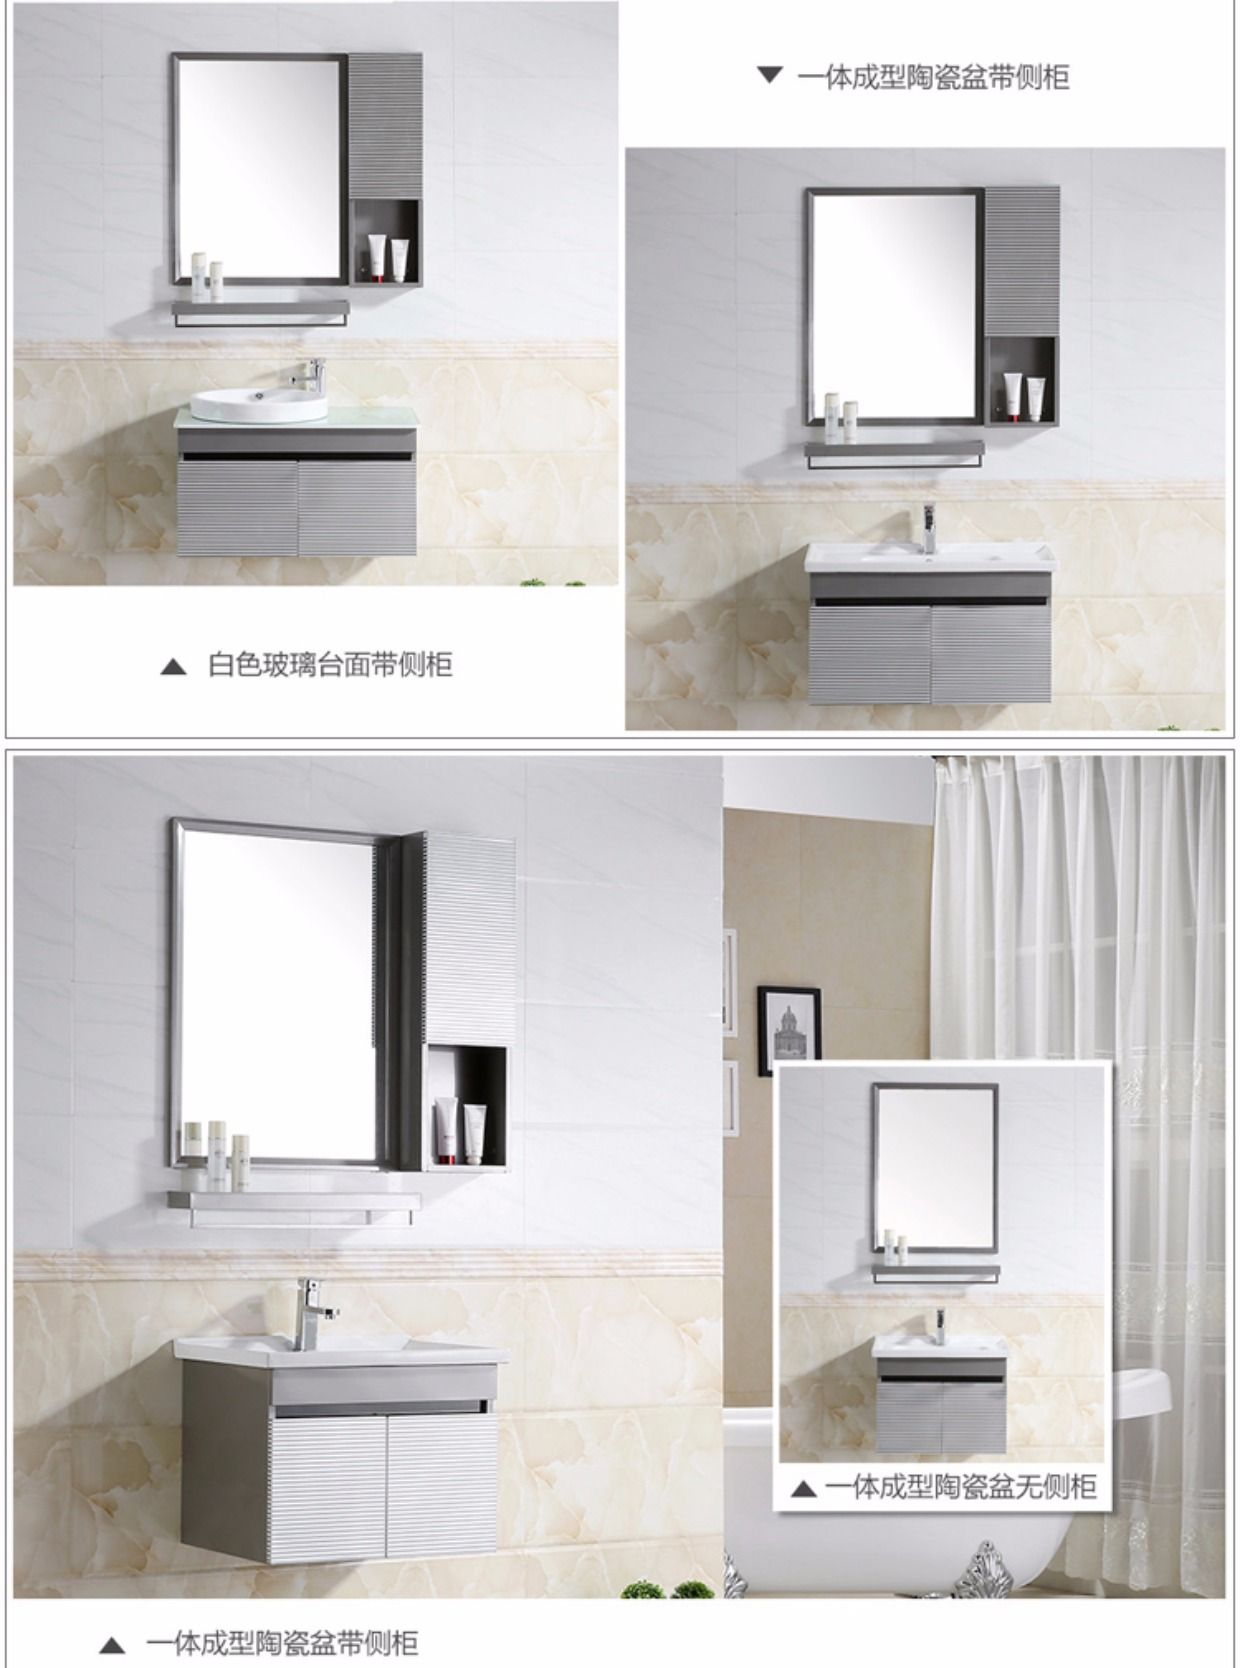 Combination stainless steel bathroom Cabinet vanity bathroom sinks ...